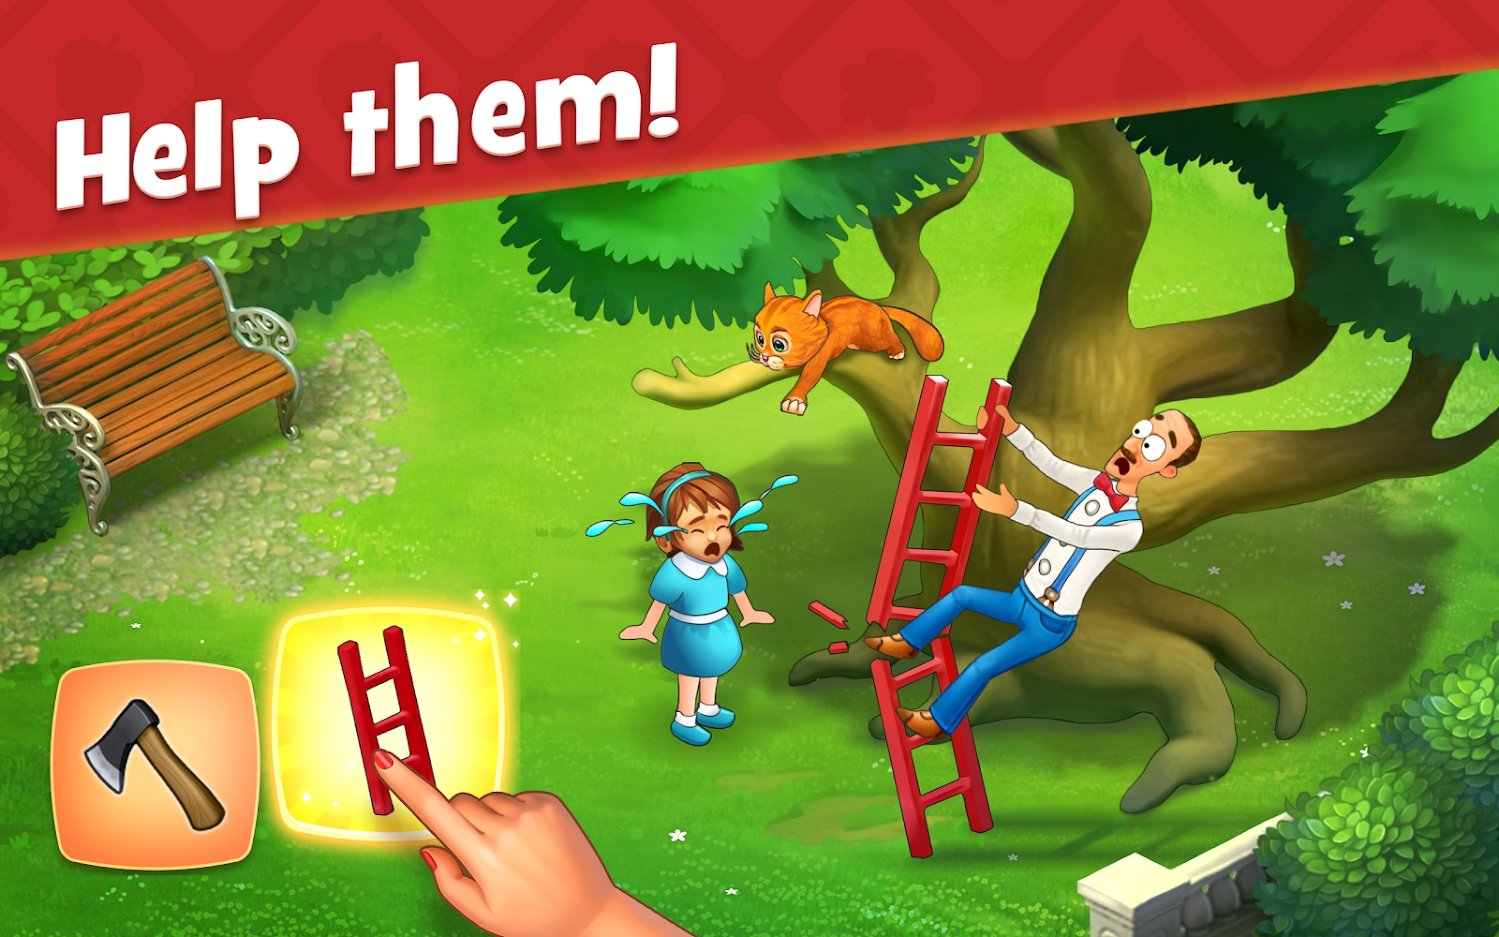 The UK Advertising Standards Authority Has Banned Misleading Gardenscapes And Homescapes Mobile Game Ads